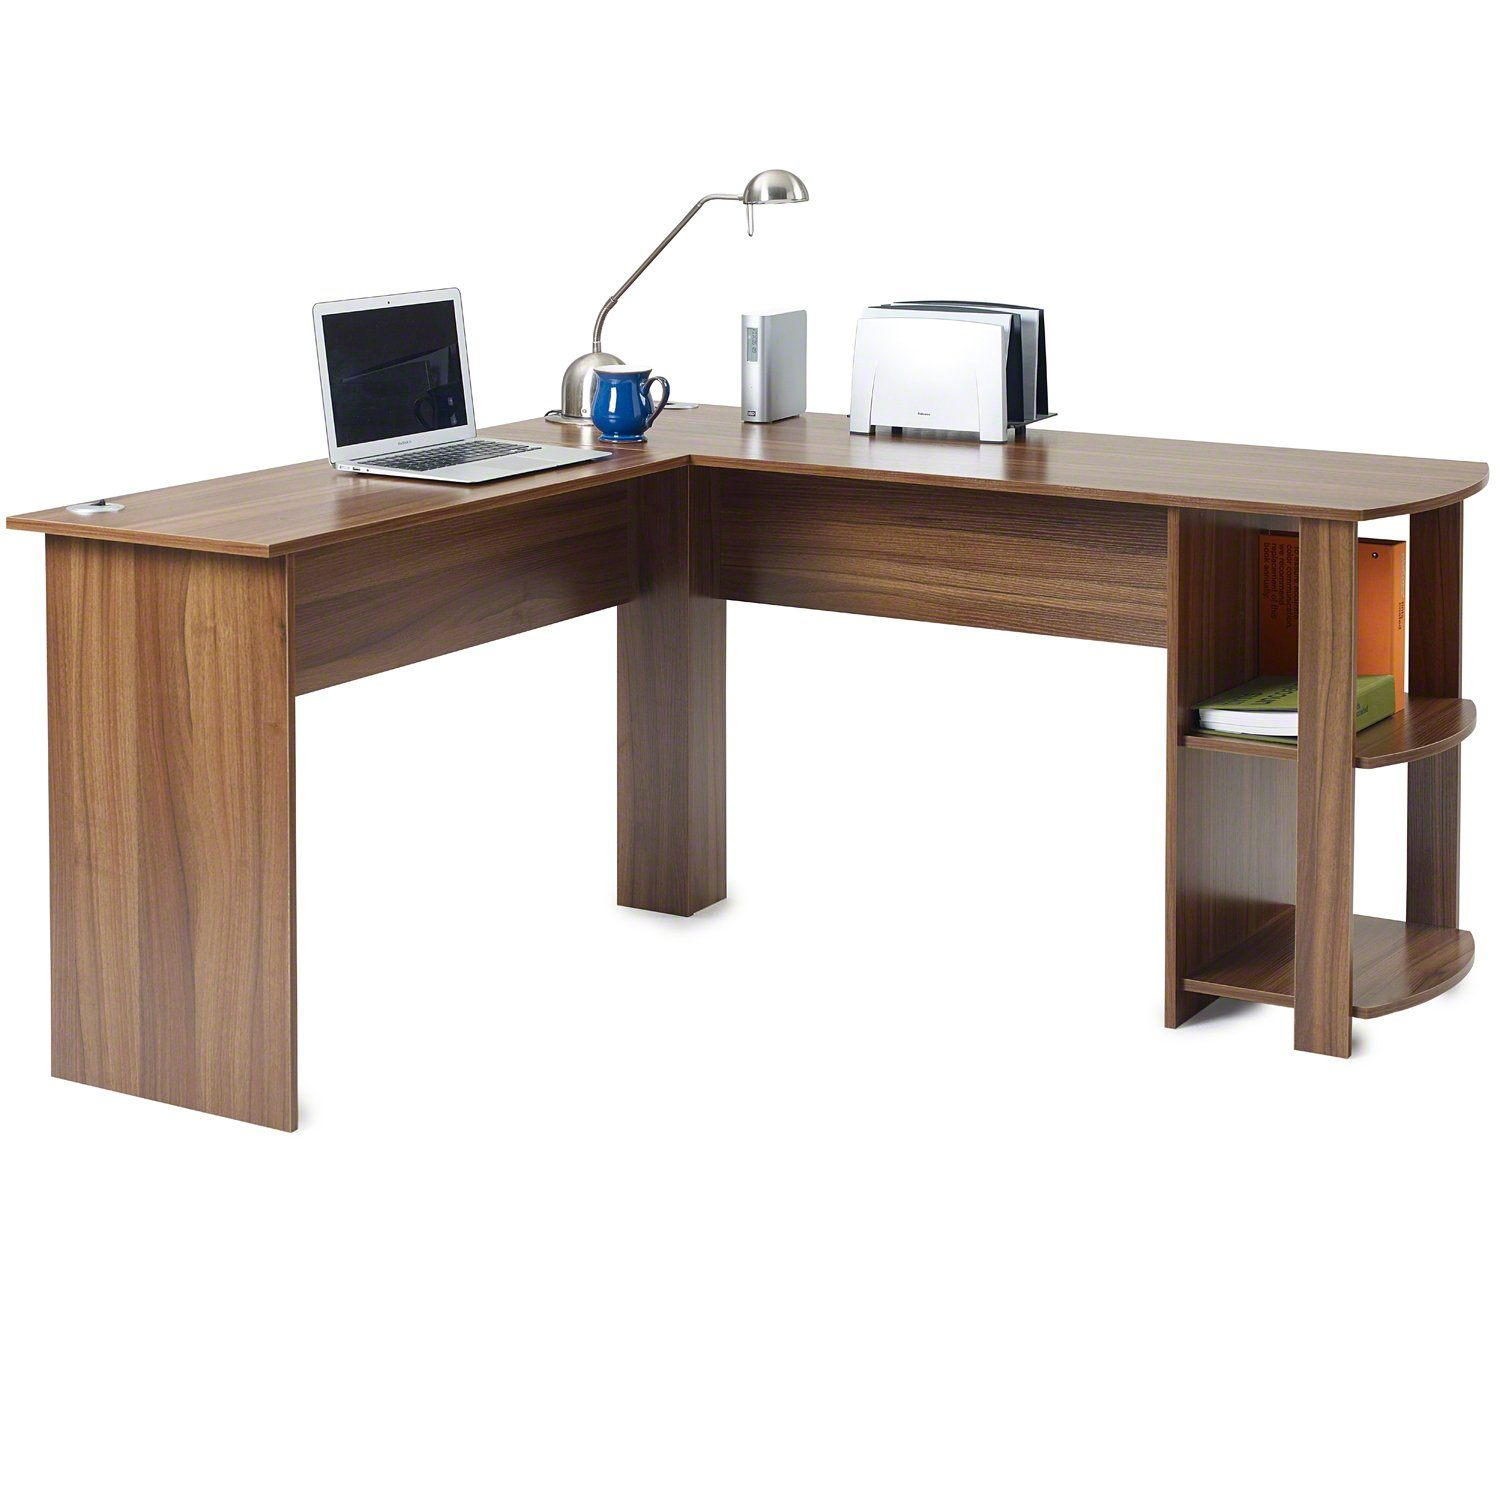 Walnut Corner Computer Desk For Home Office - Laura James